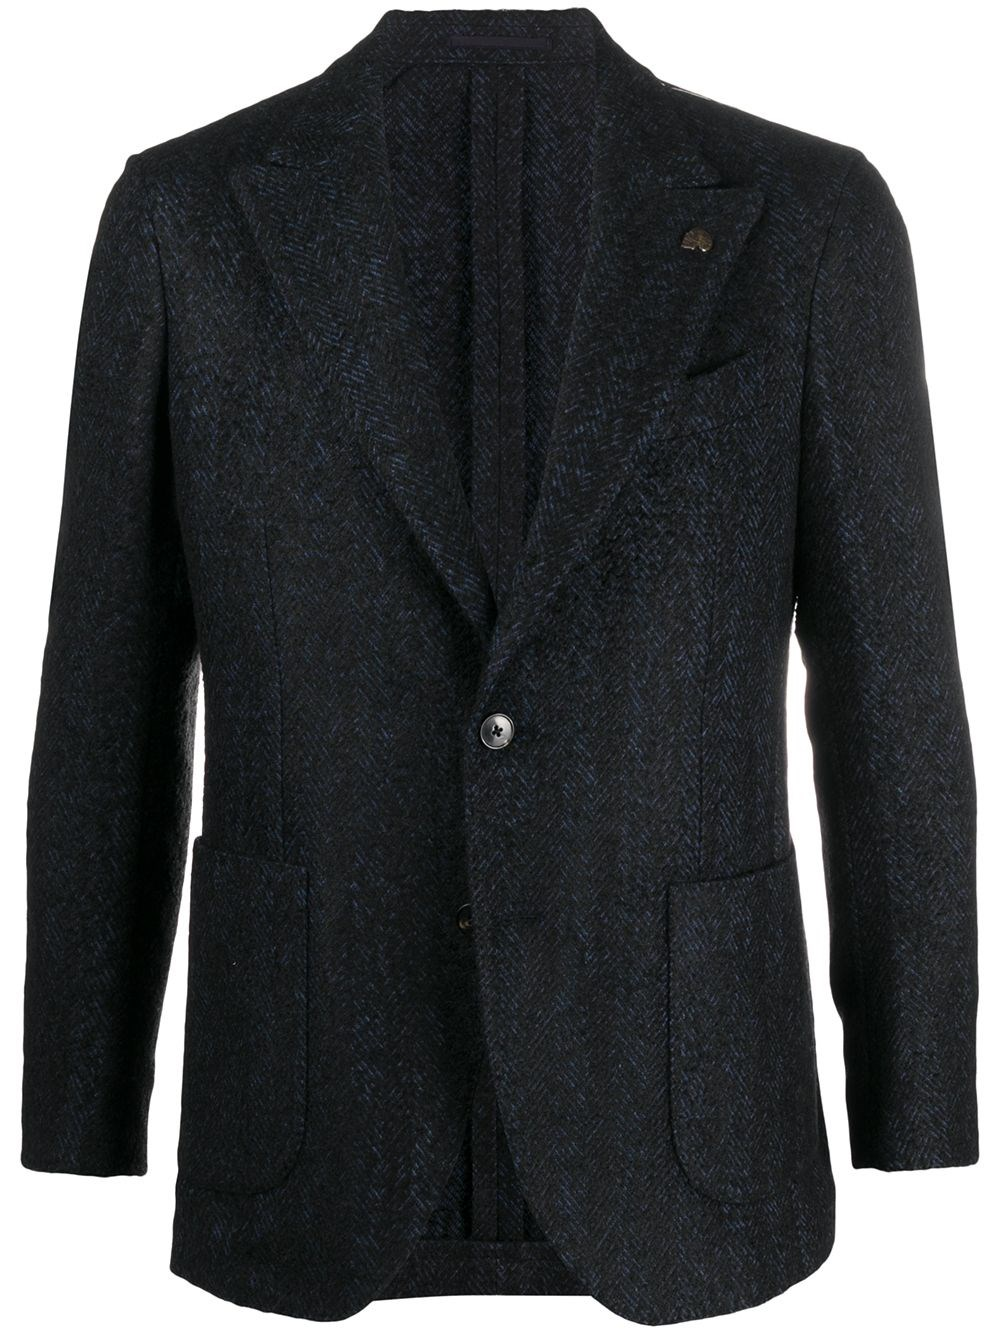 GABRIELE PASINI Chevron Knit Single-Breasted Blazer